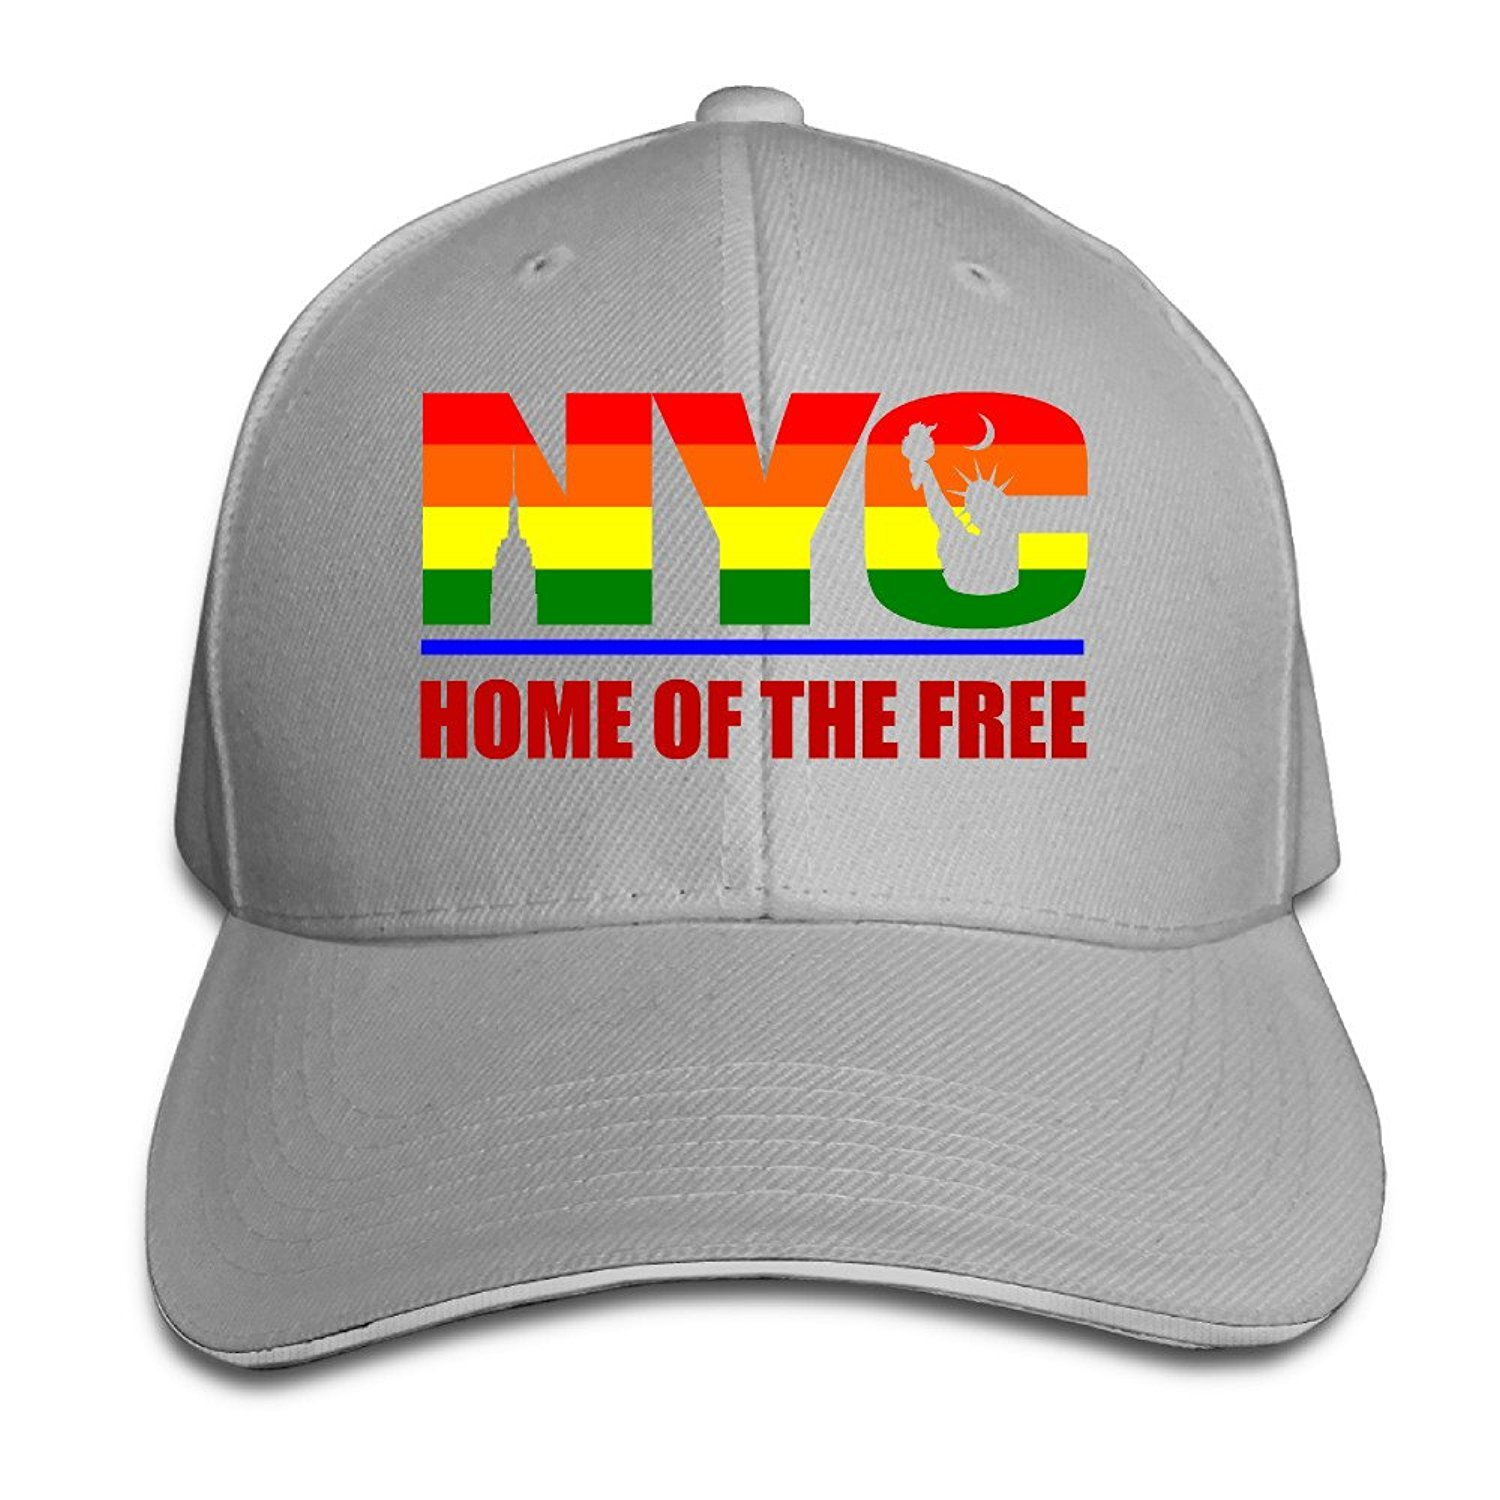 fed9c94c8f3 Unisex New York Home Of The Free Adjustable Snapback Trucker Hat Ash One  Size Apparel